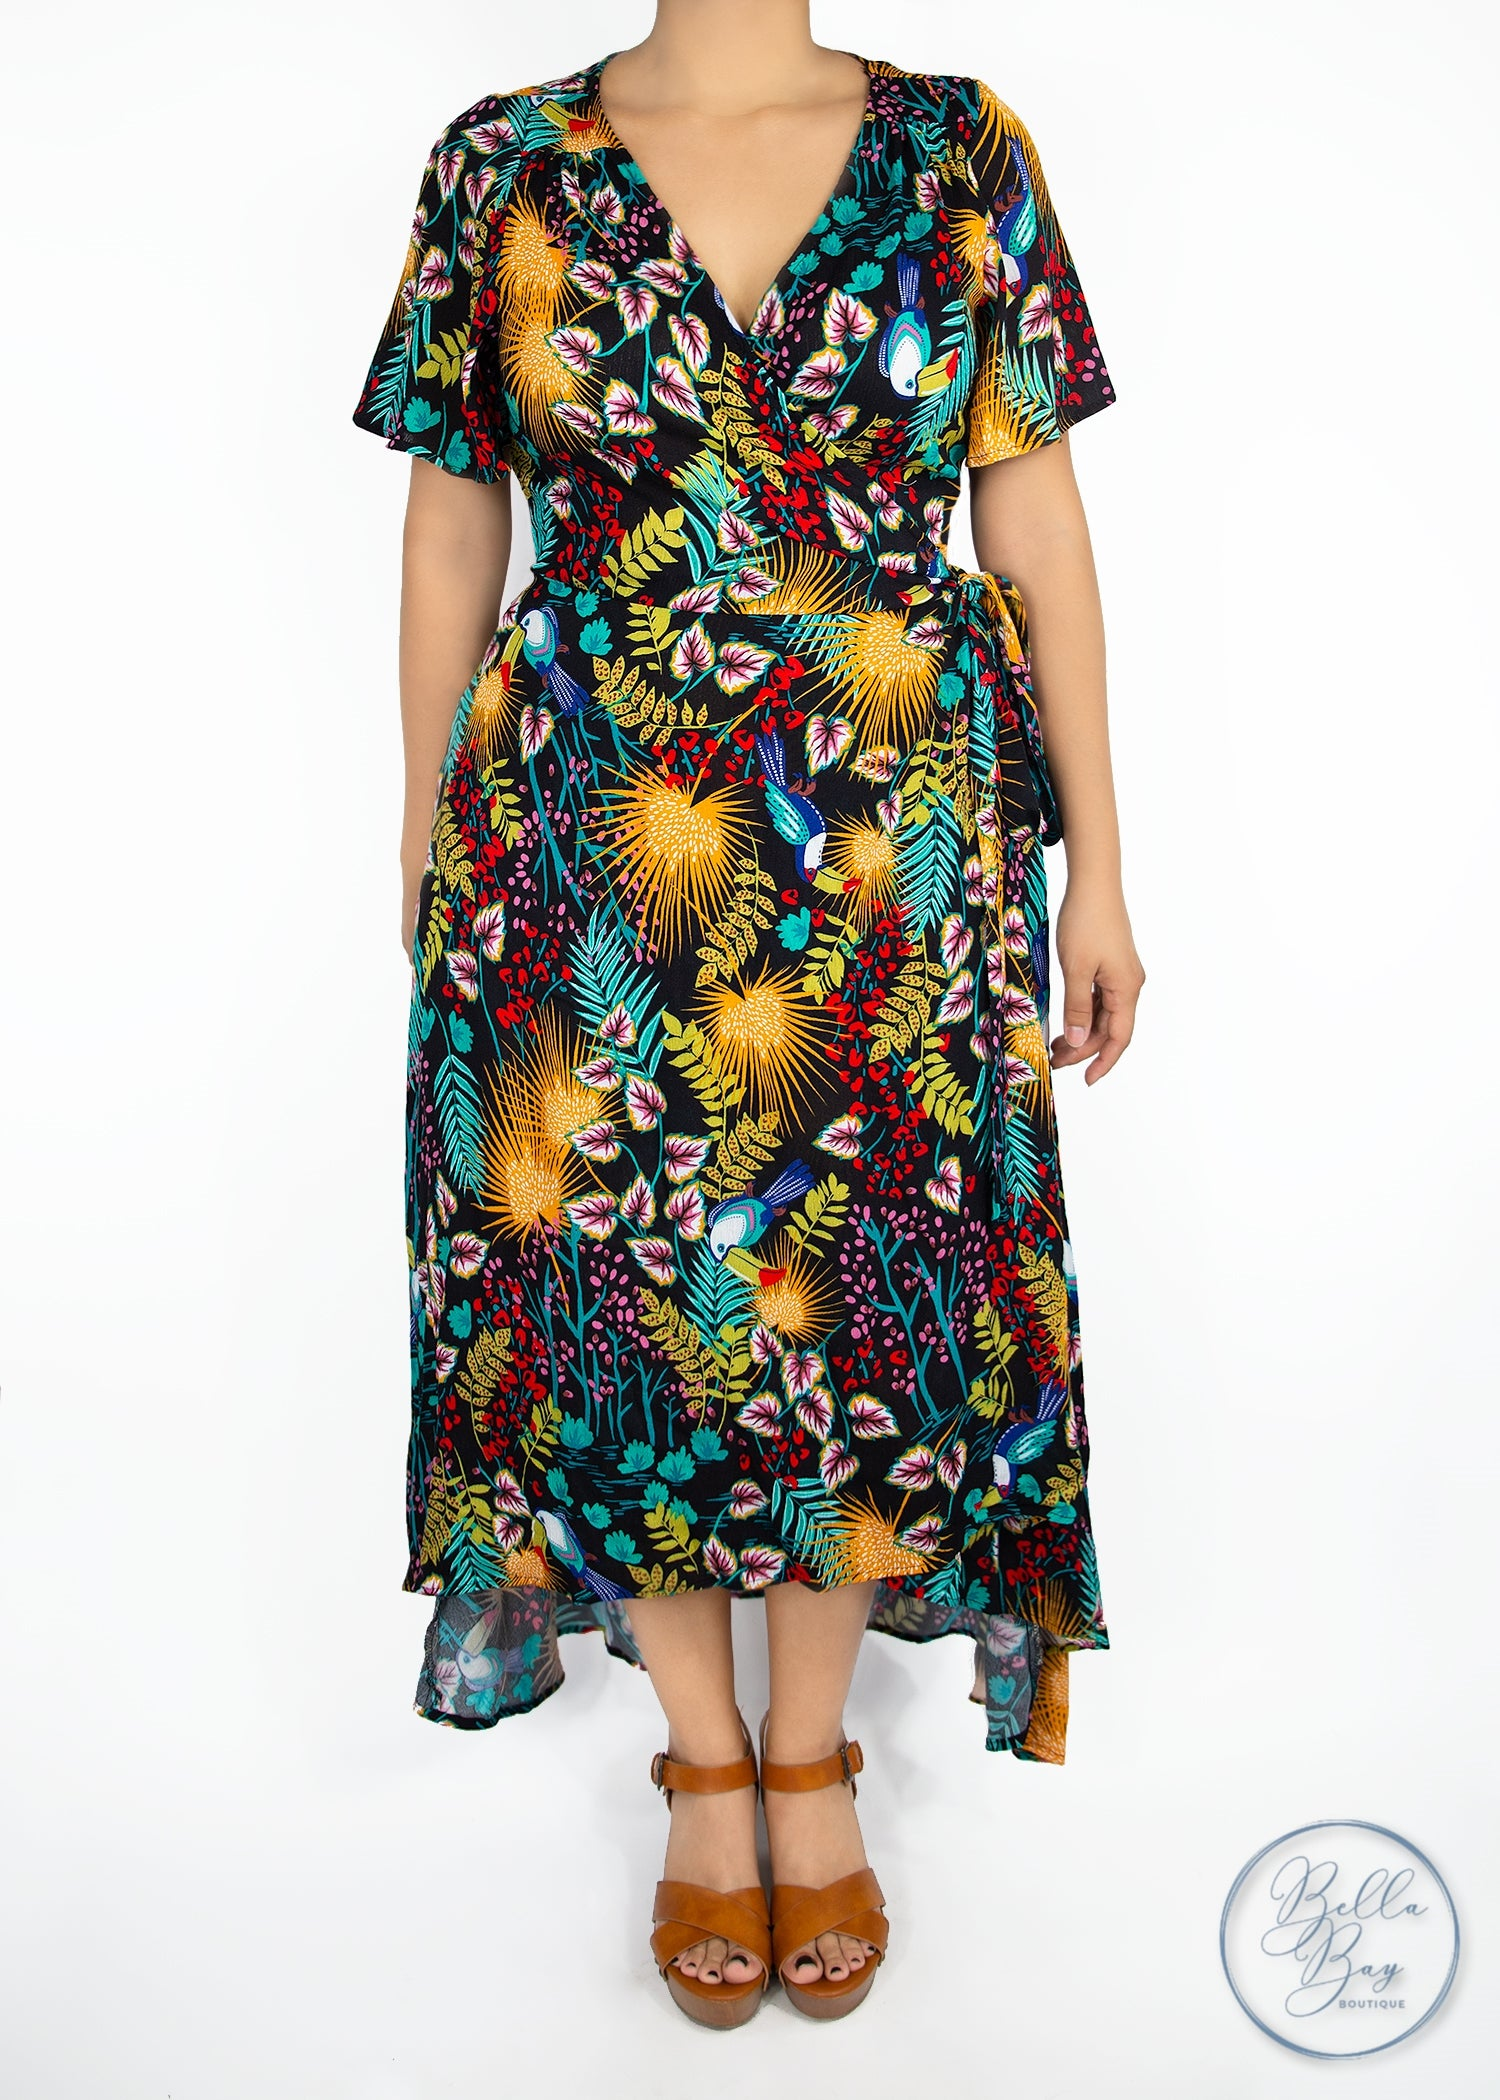 Paisley Raye Primrose Wrap Dress - Tropical (XS) - Paisley Raye with Bella Bay Boutique, shop now at  https://shopbellabay.com/ or locally in Newport Oregon